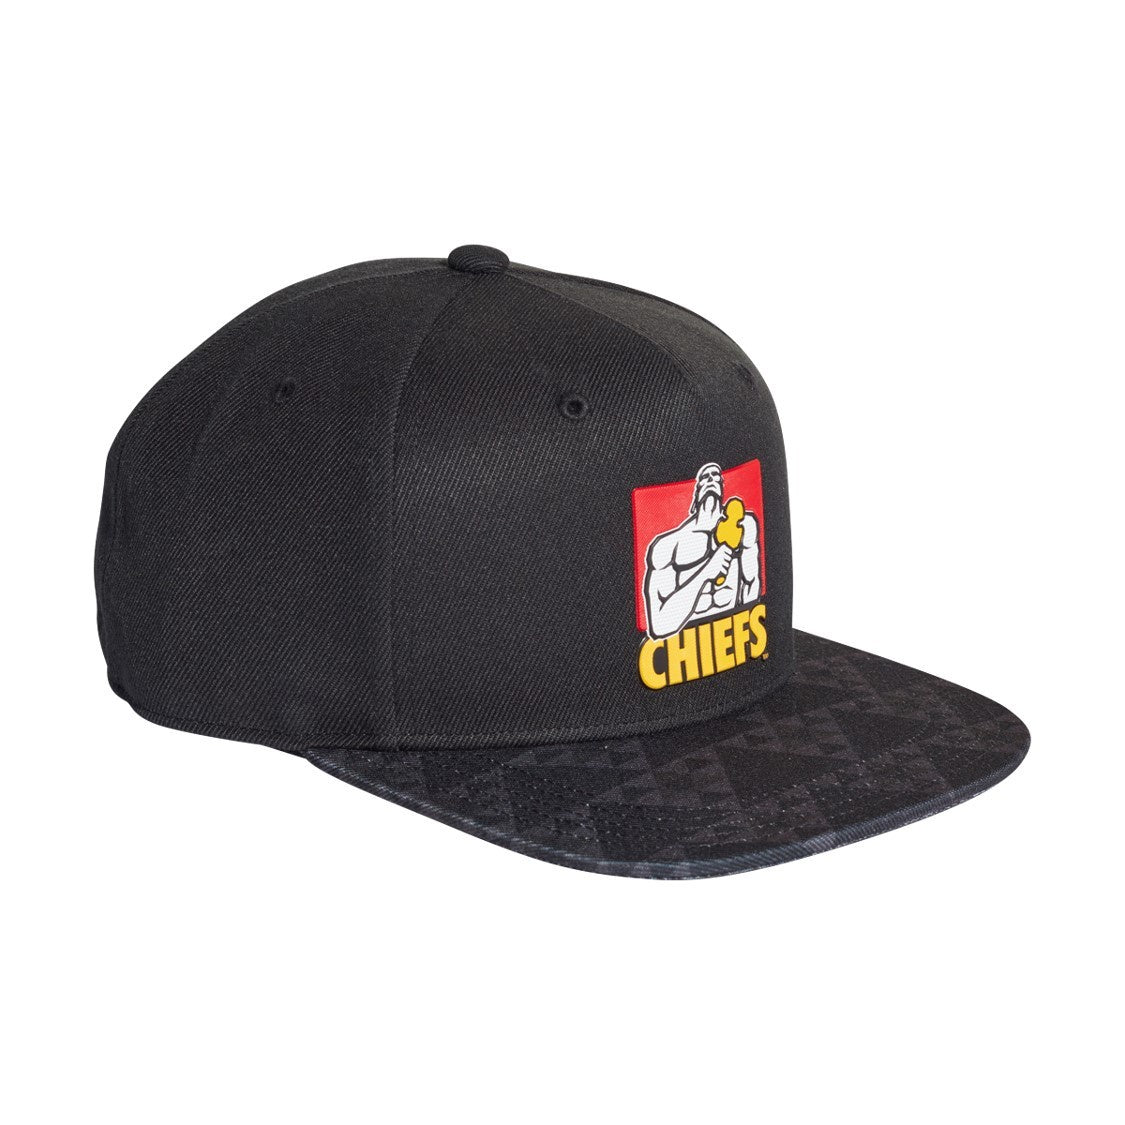 2018 19 Chiefs Snapback – Chiefs Merchandise Store 89a20693bad